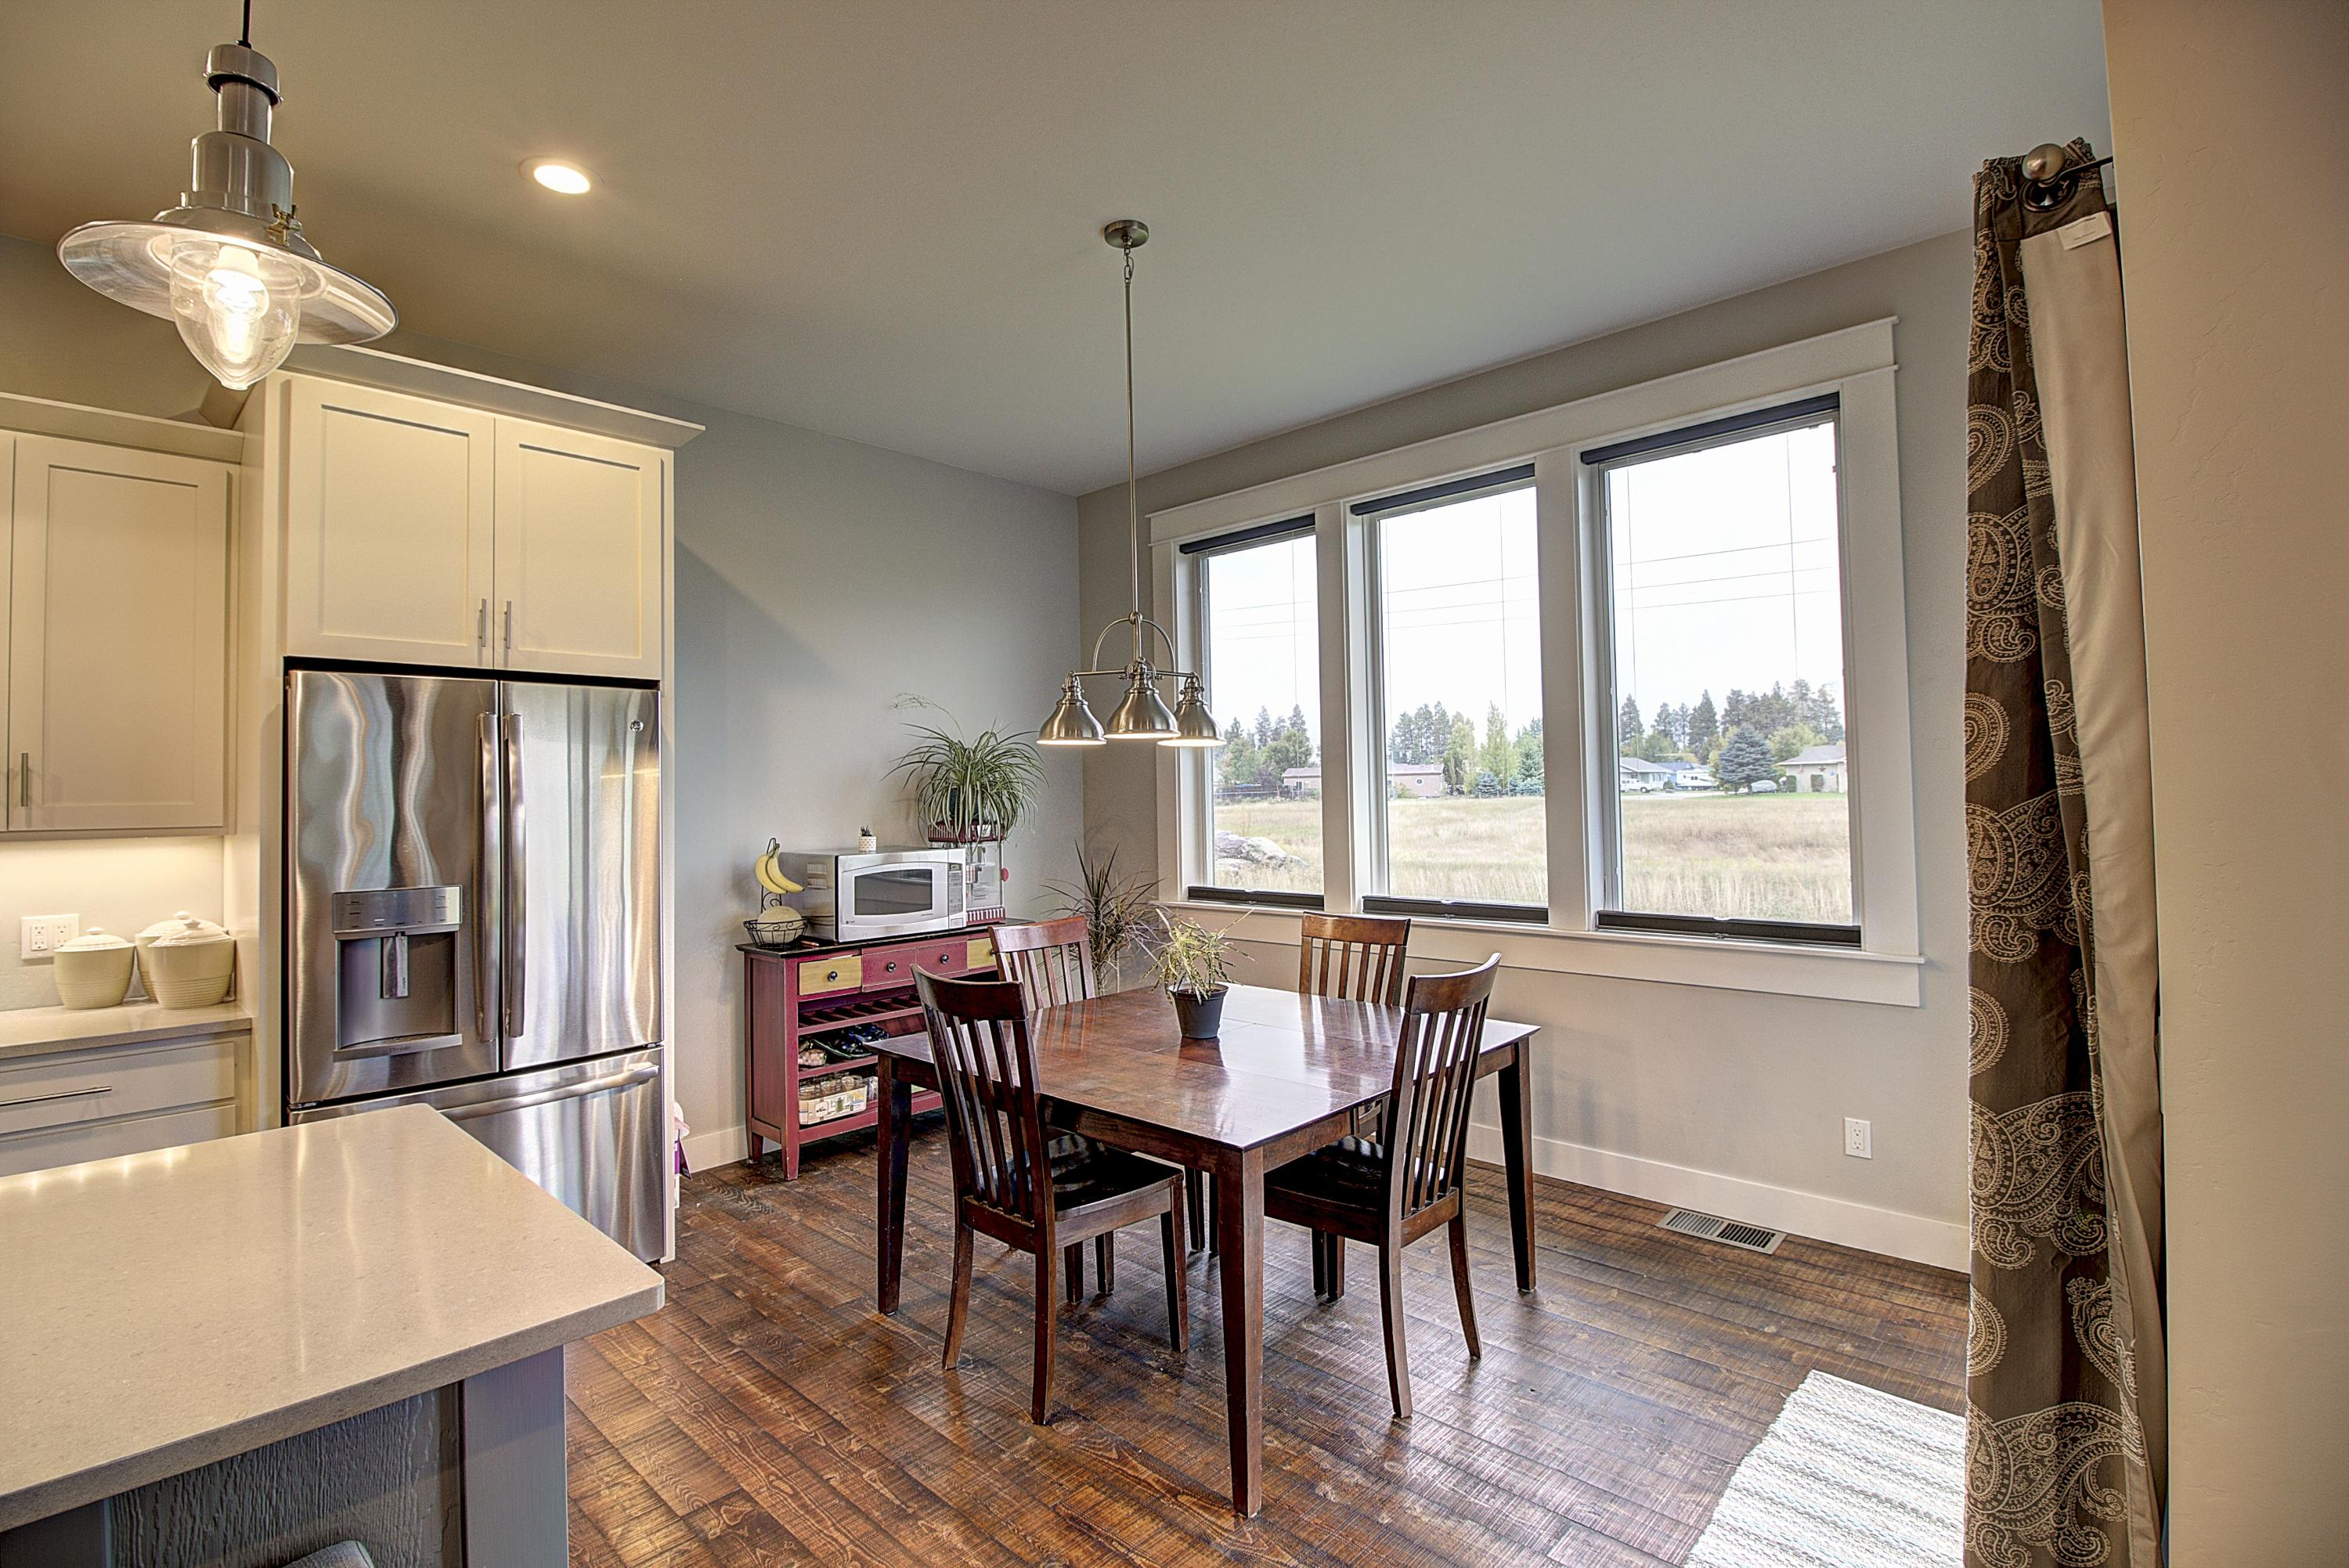 Kitchen to Dining Room View